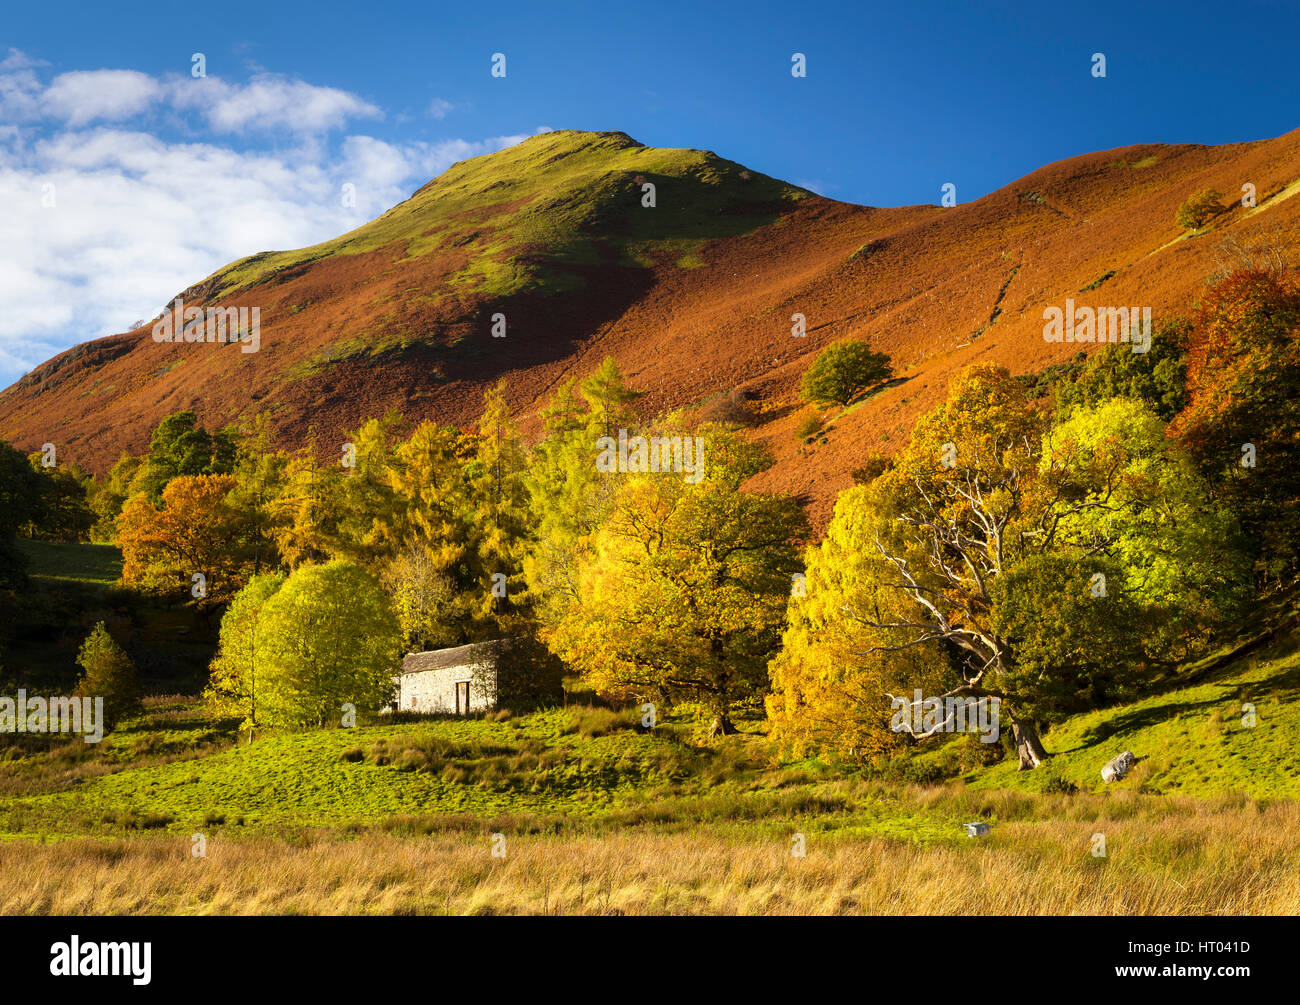 The English Lake District in Autumn. Brandlehow Park on the shore of Derwent Water with Catbells behind. - Stock Image